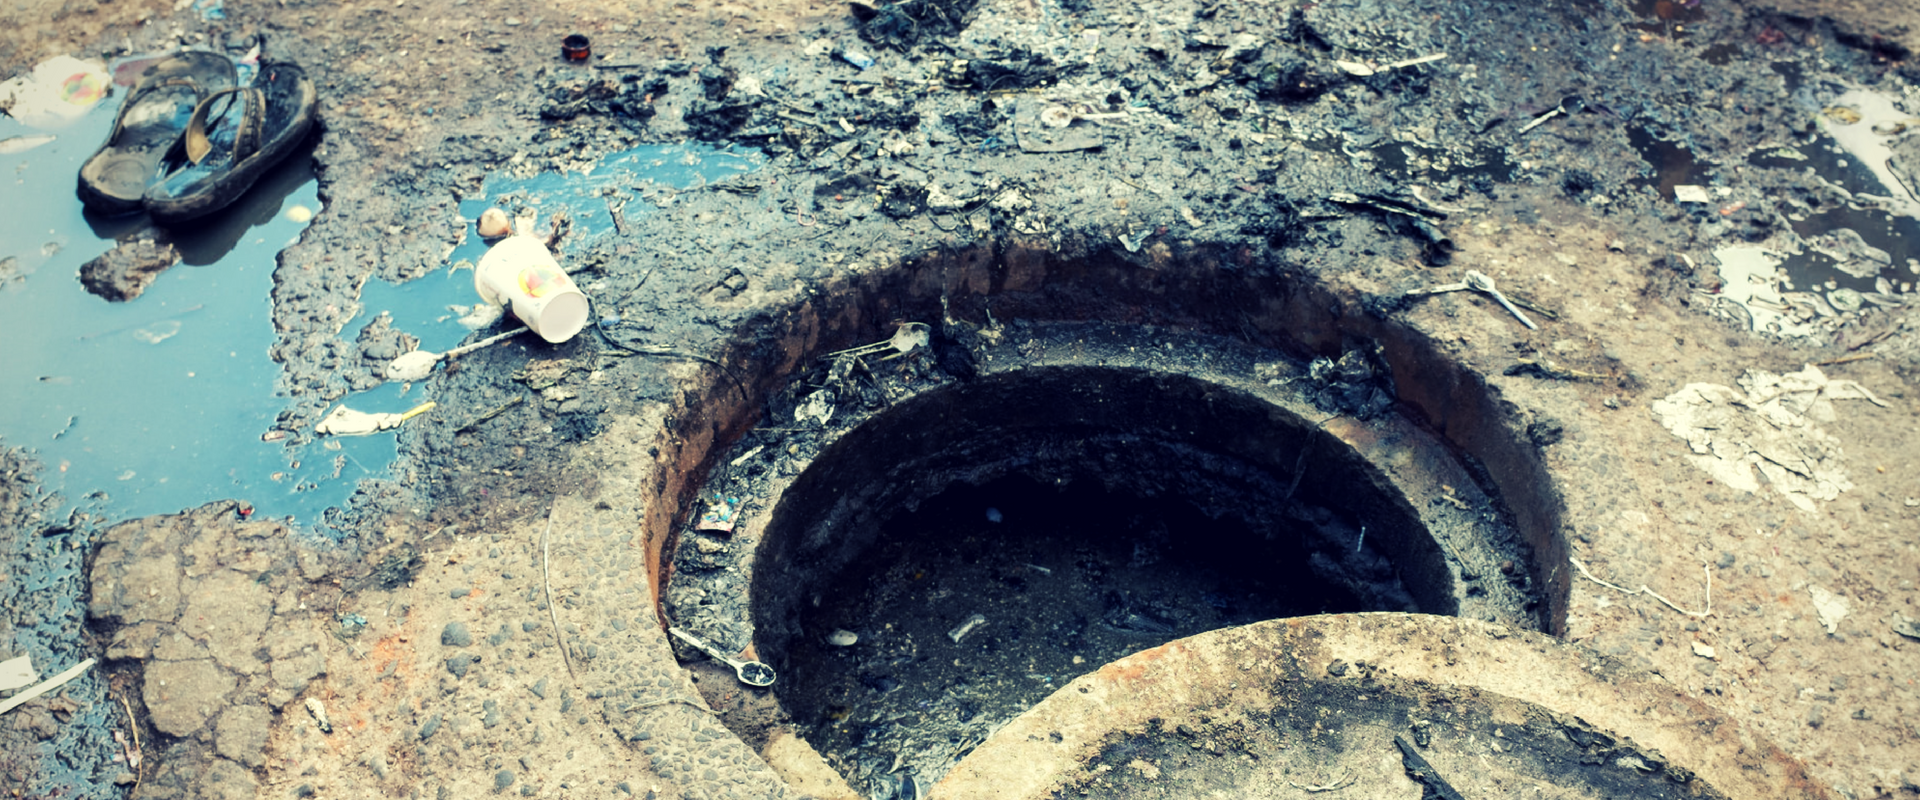 Why India Needs to Address Caste-Based Manual Scavenging Before it Aims for  A 'Swacch Bharat'